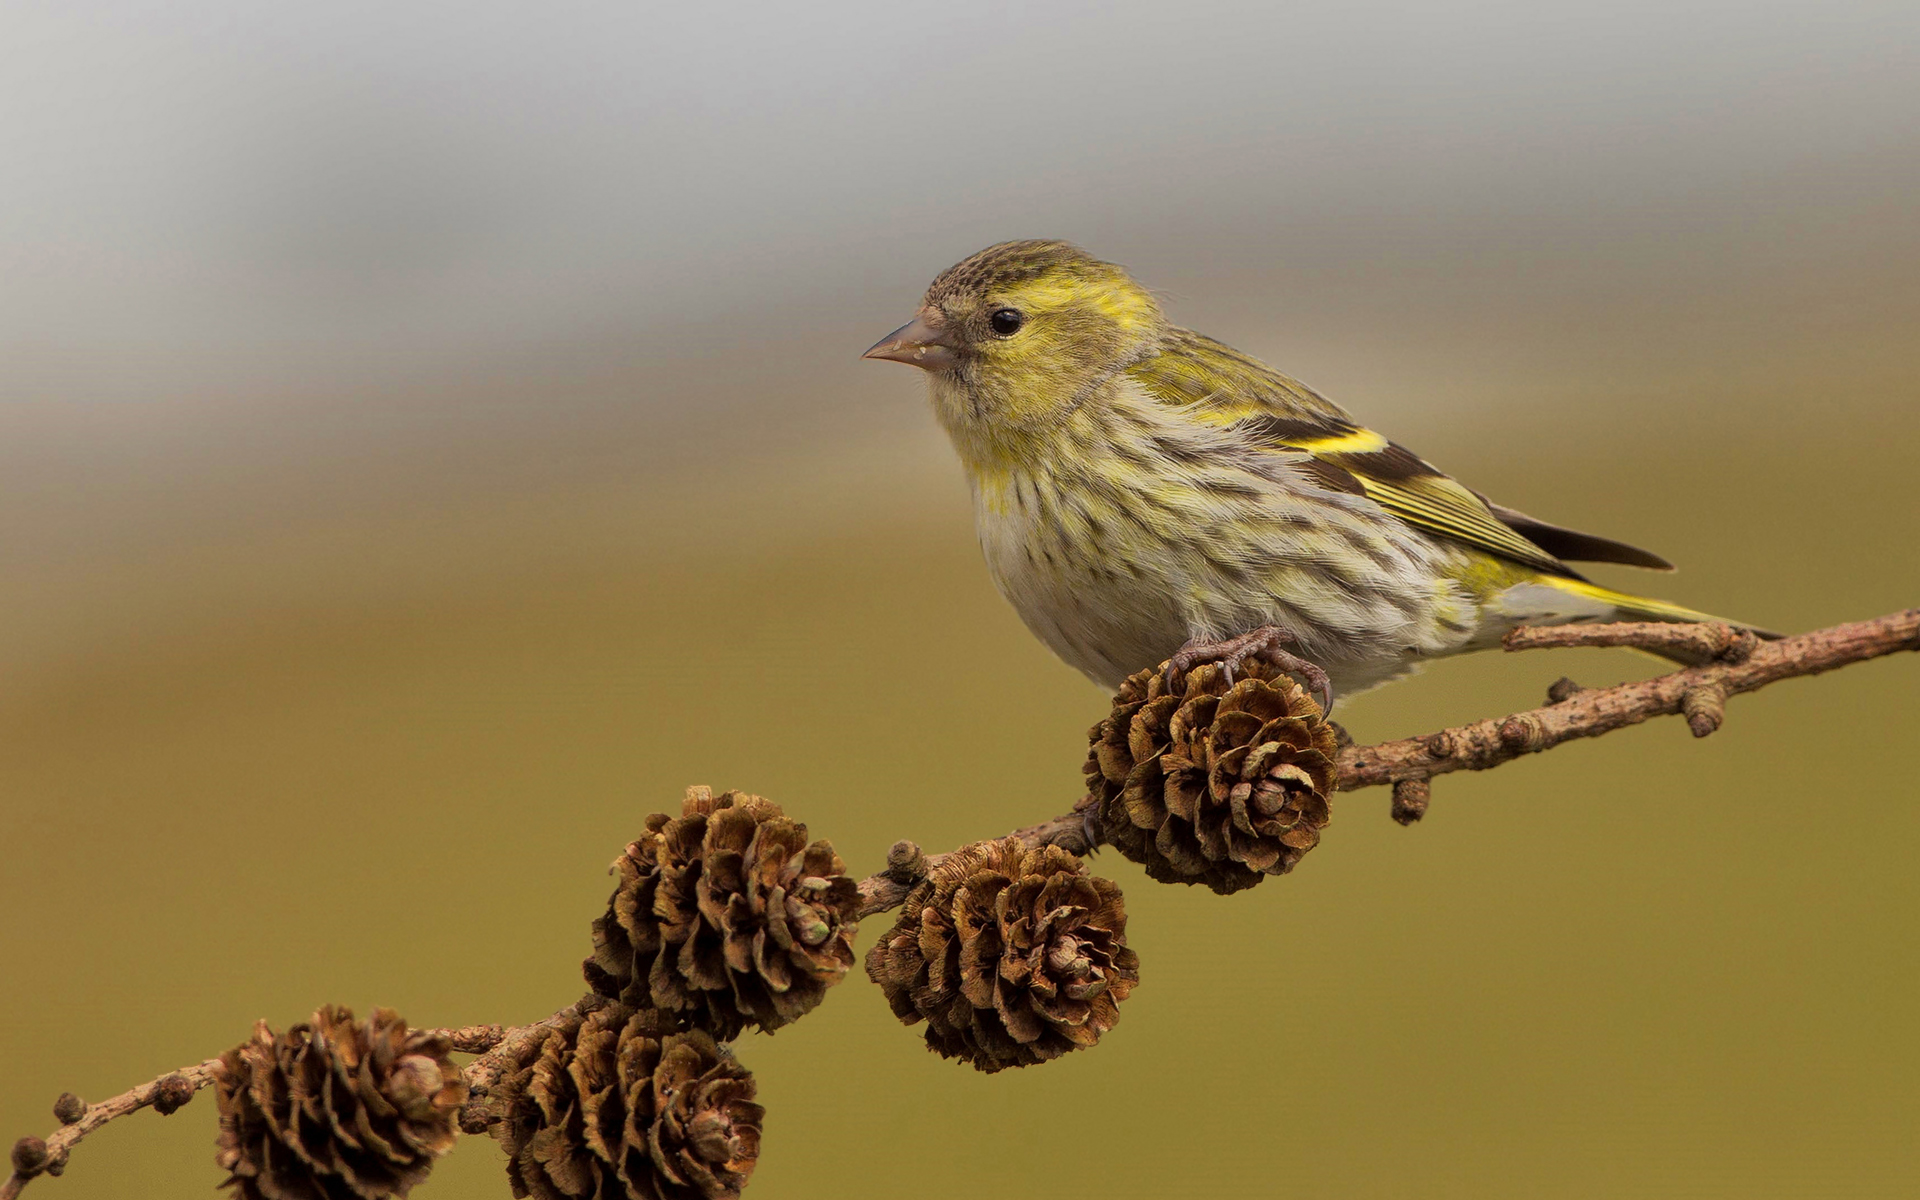 Siskin bird on branch